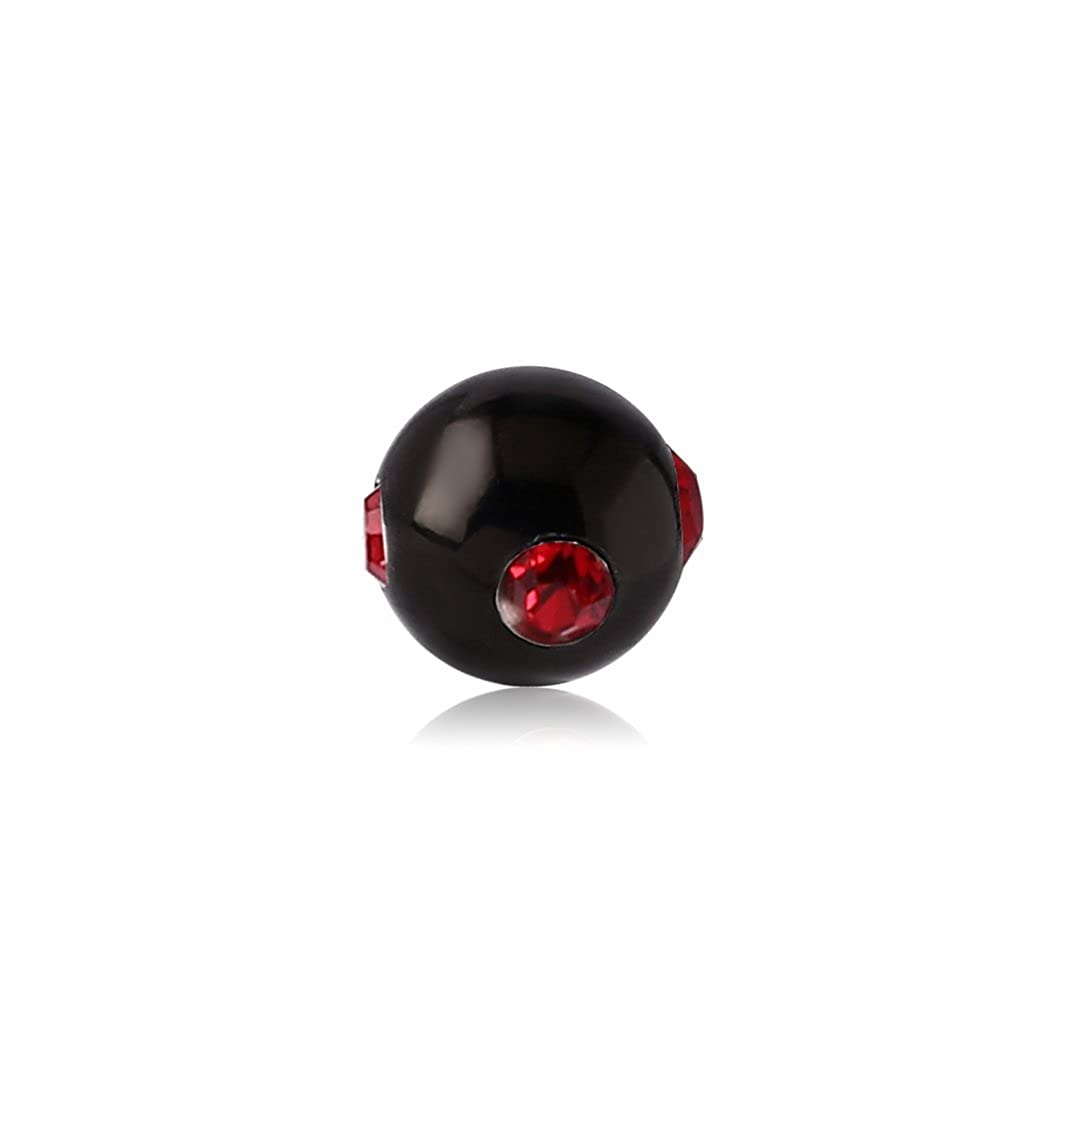 Bubble Body Jewelry Black Pvd Surgical Steel Jeweled Satellite Ball 1.6mm Gauge 14g